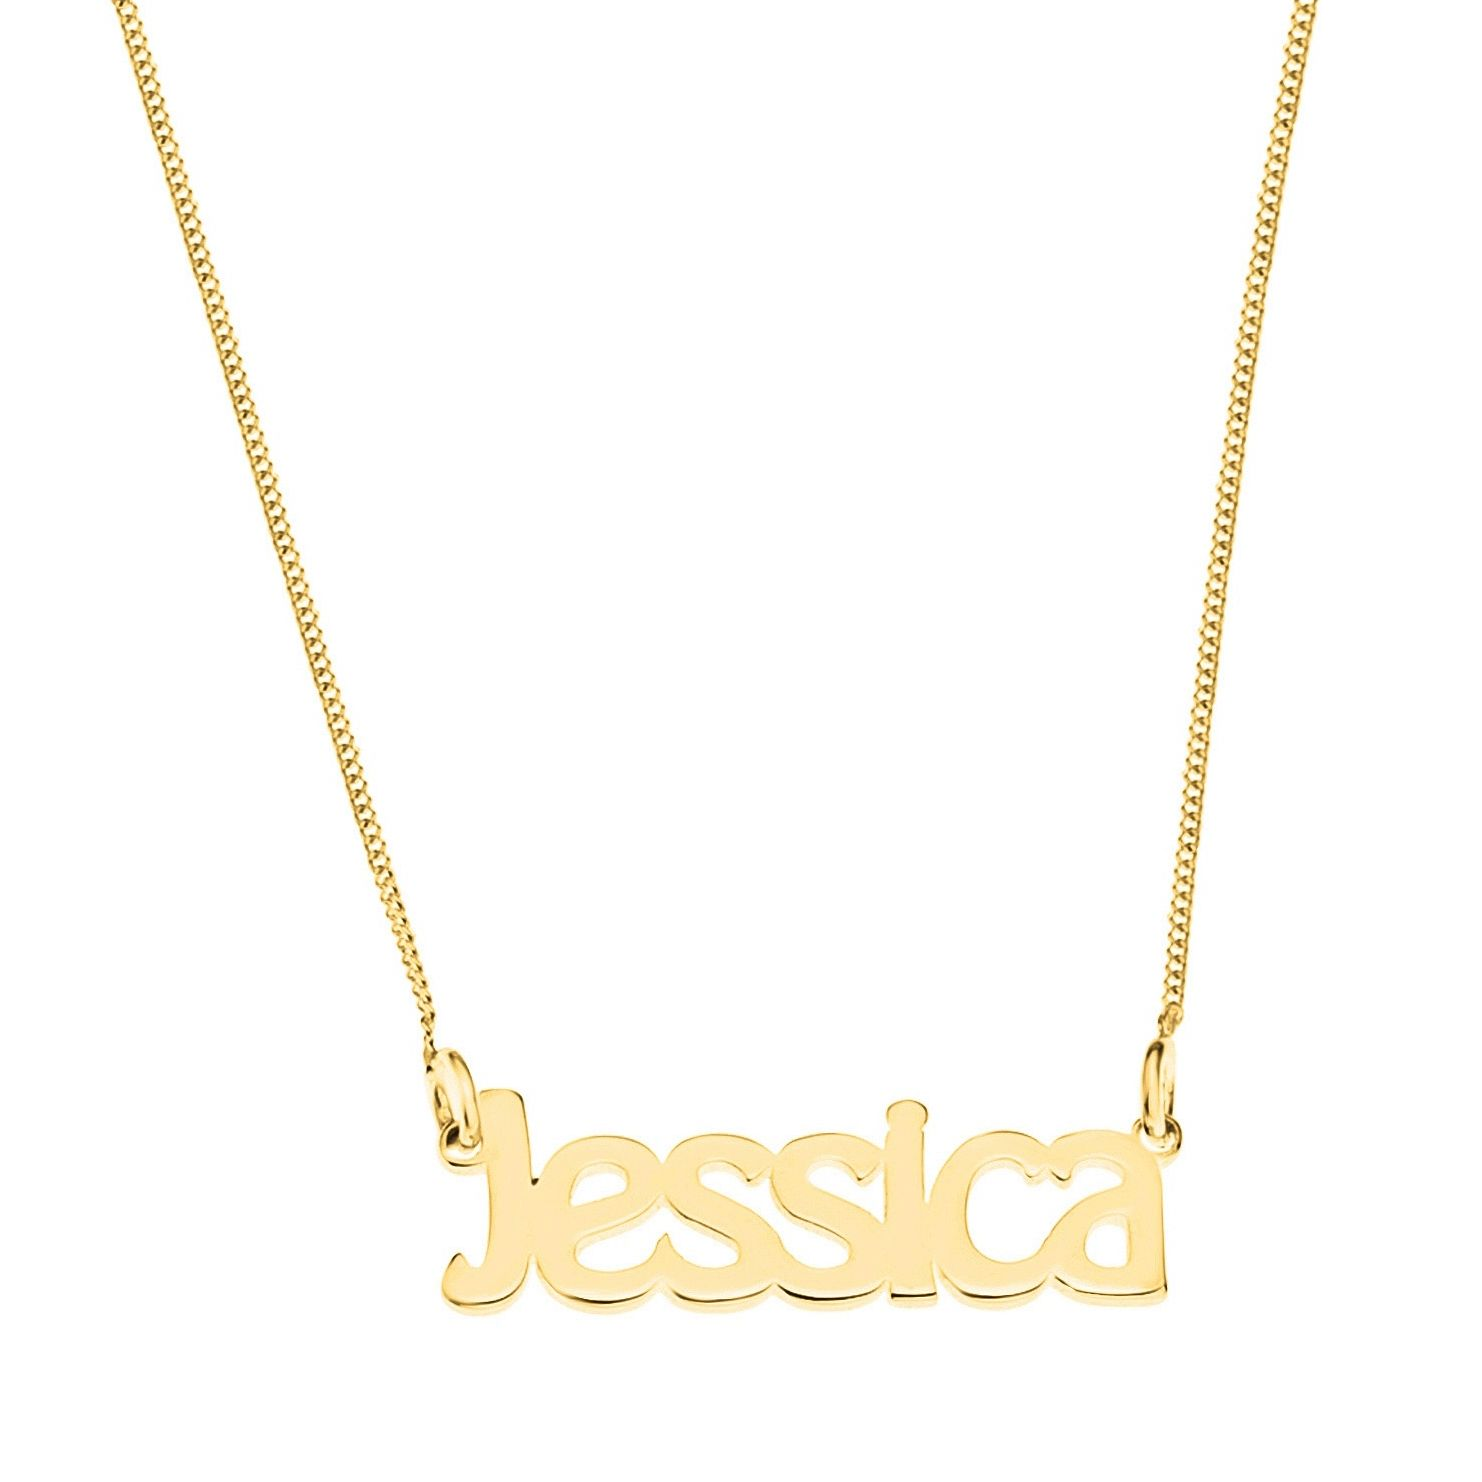 Gold Plated Silver Jessica Nameplate Necklace - Product number 4105834